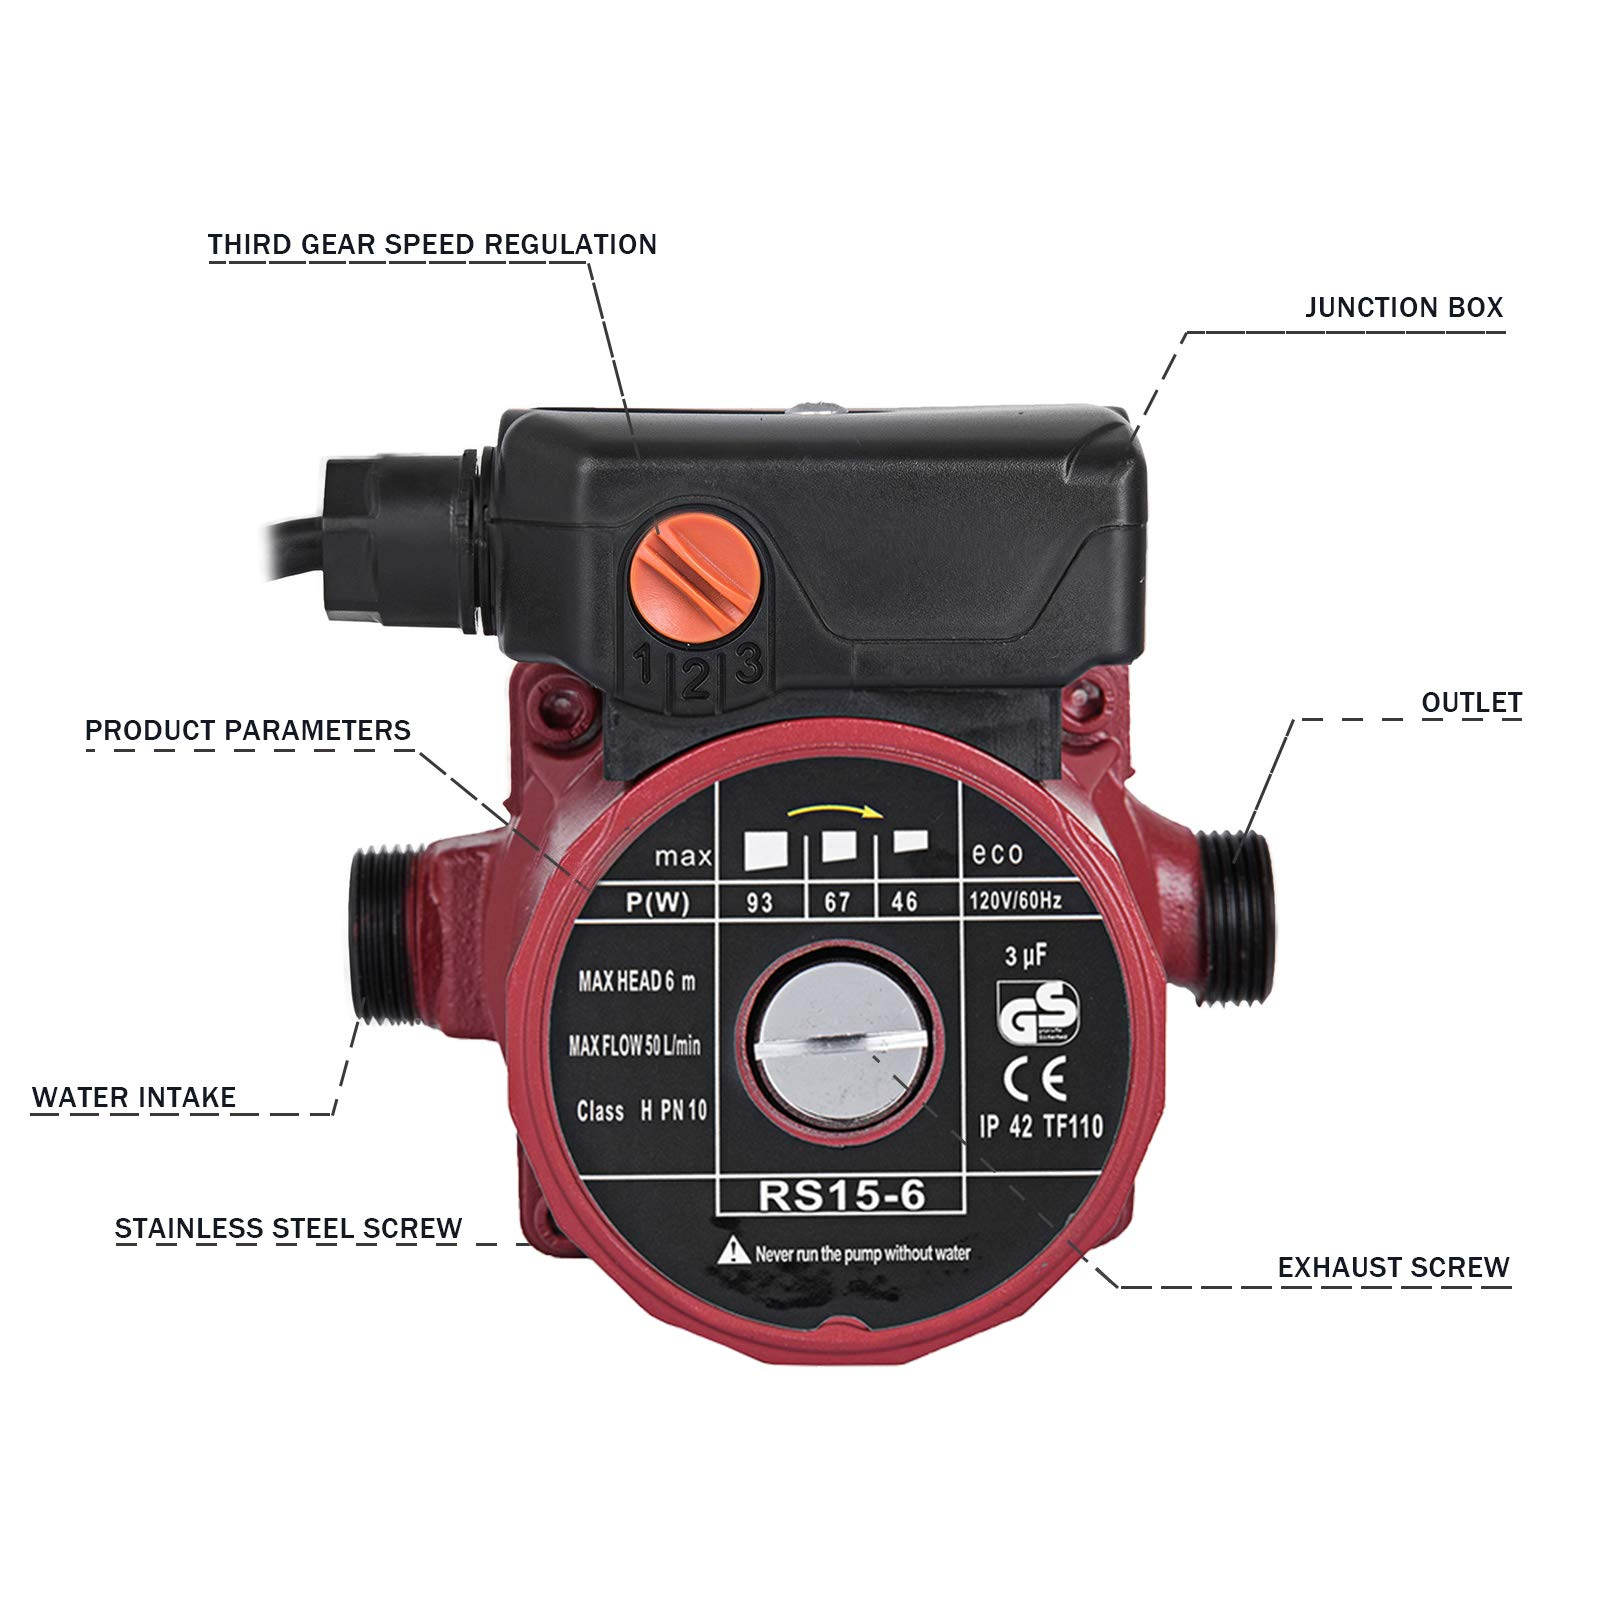 Happybuy RS15-6 Hot Water Recirculating Pump 110V Circulation Pump 0.75 inches NPT 3-speed Recirculation Pump 9.5 Gpm for Water Heater System by Happybuy (Image #3)